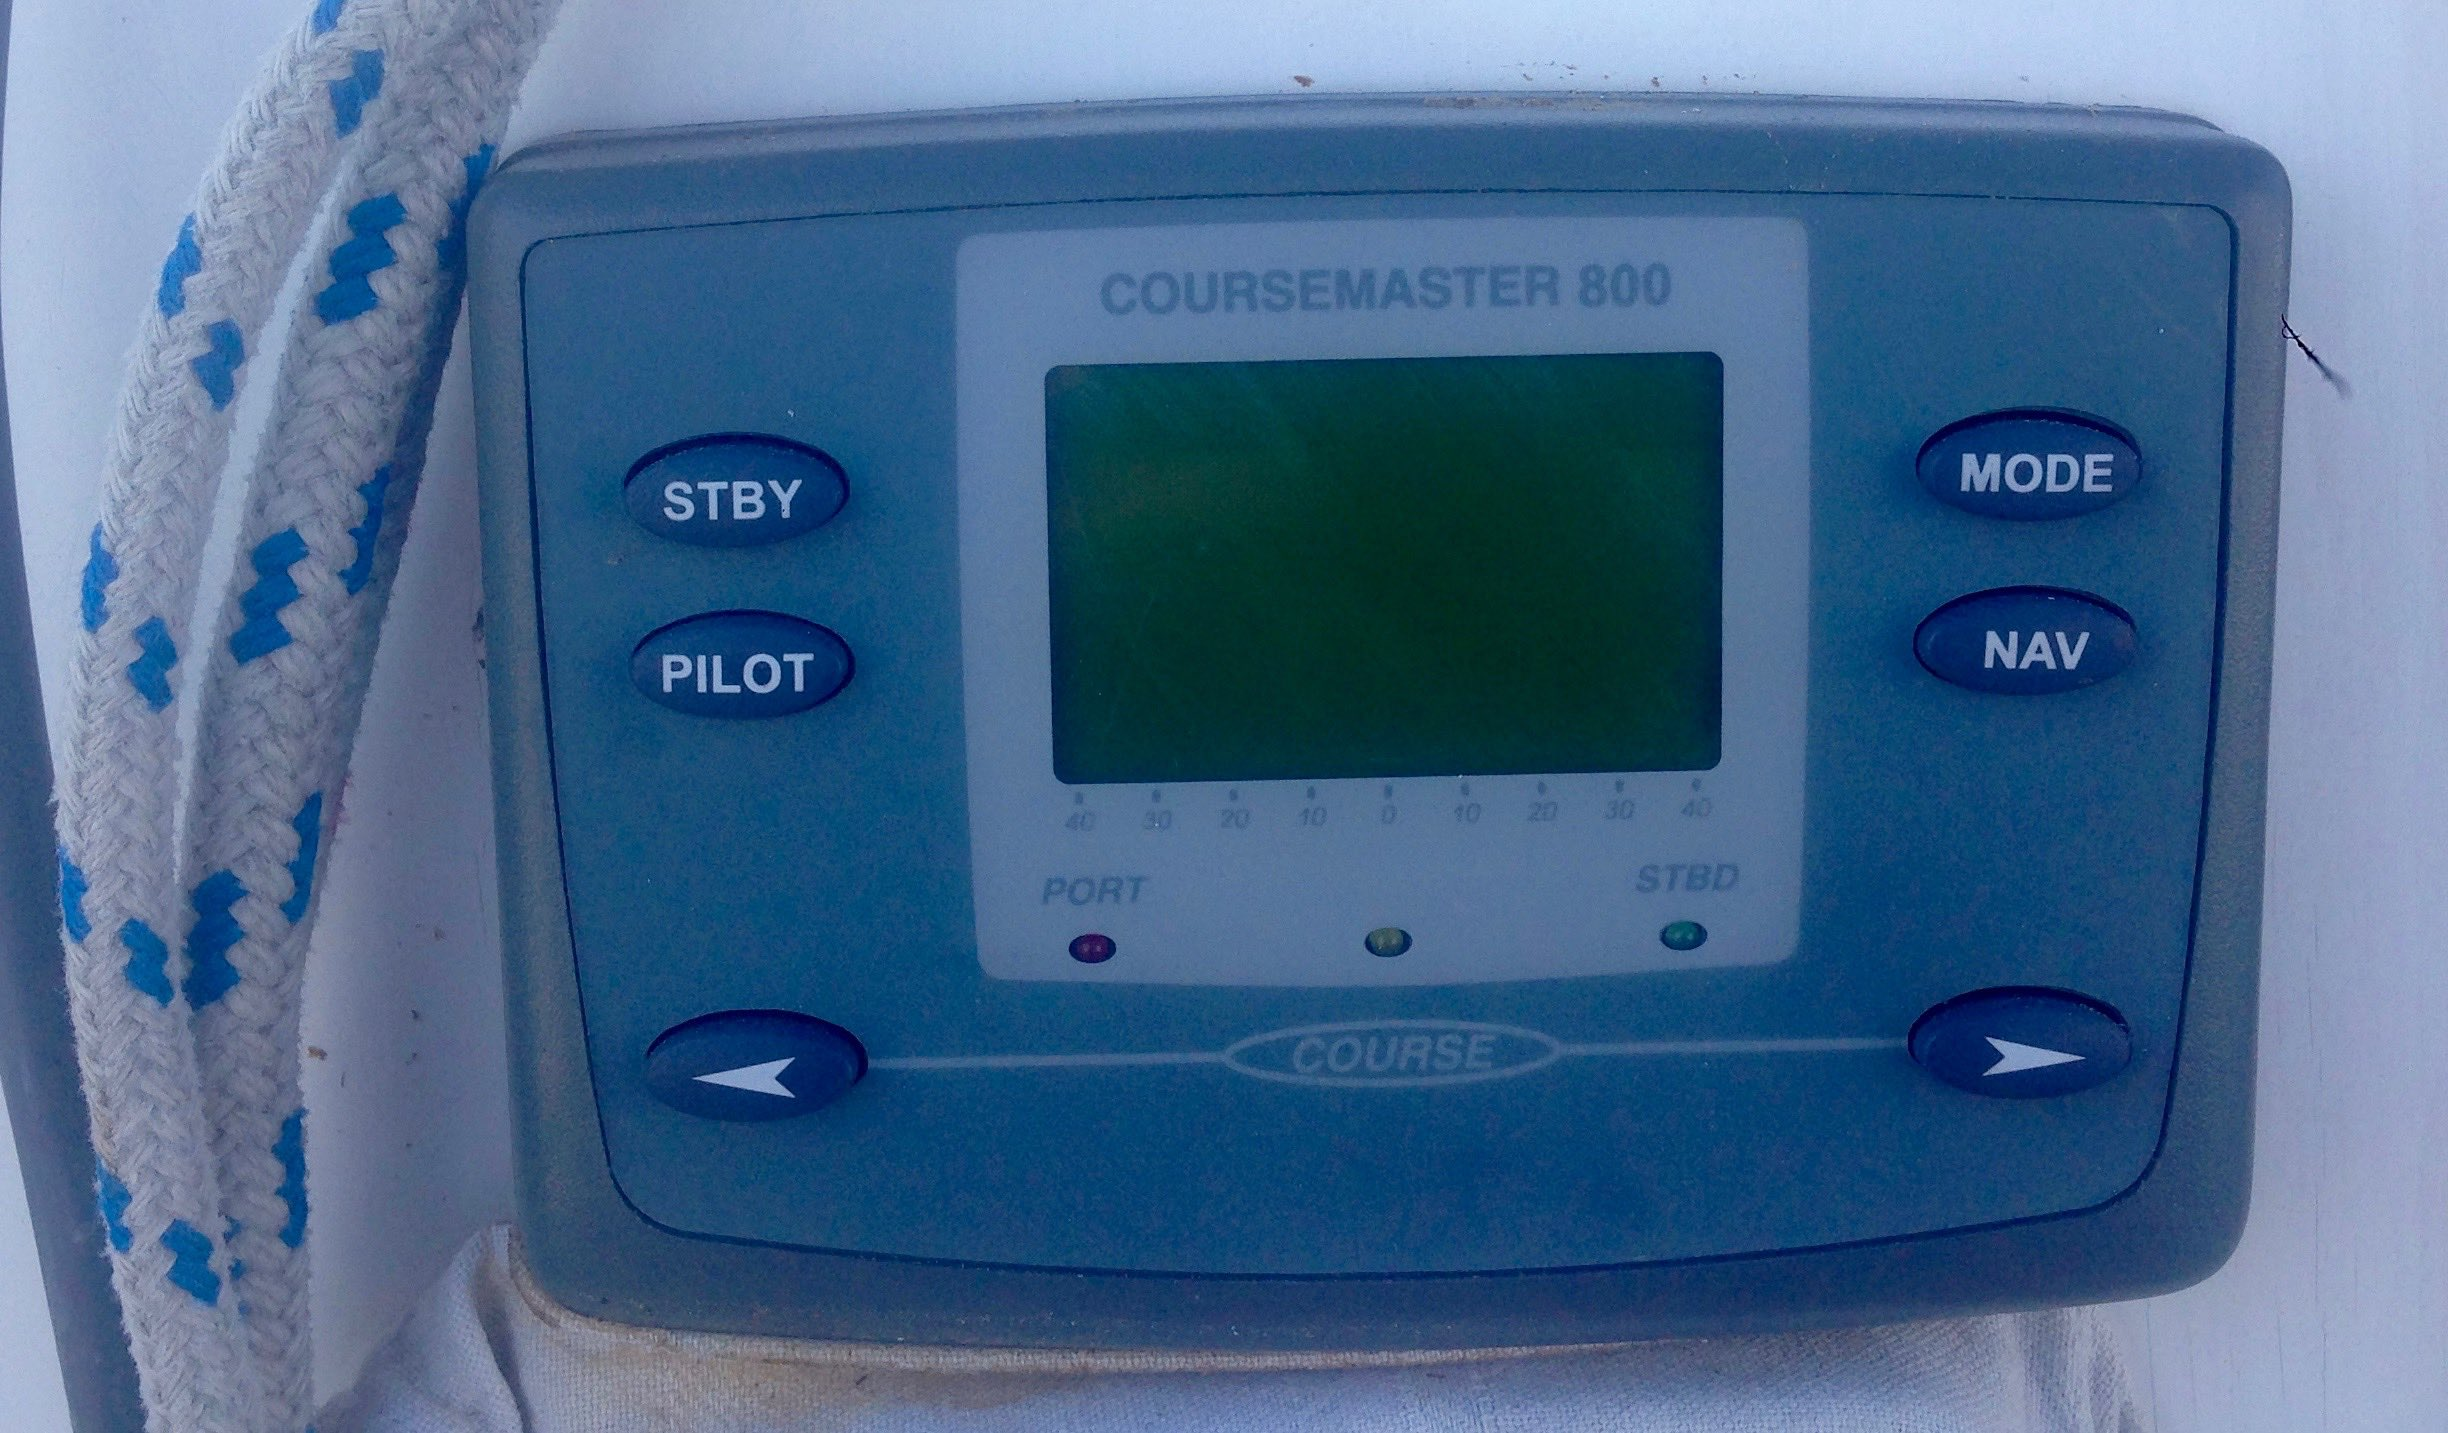 The original Coursemaster 800 auto-pilot on Impulse